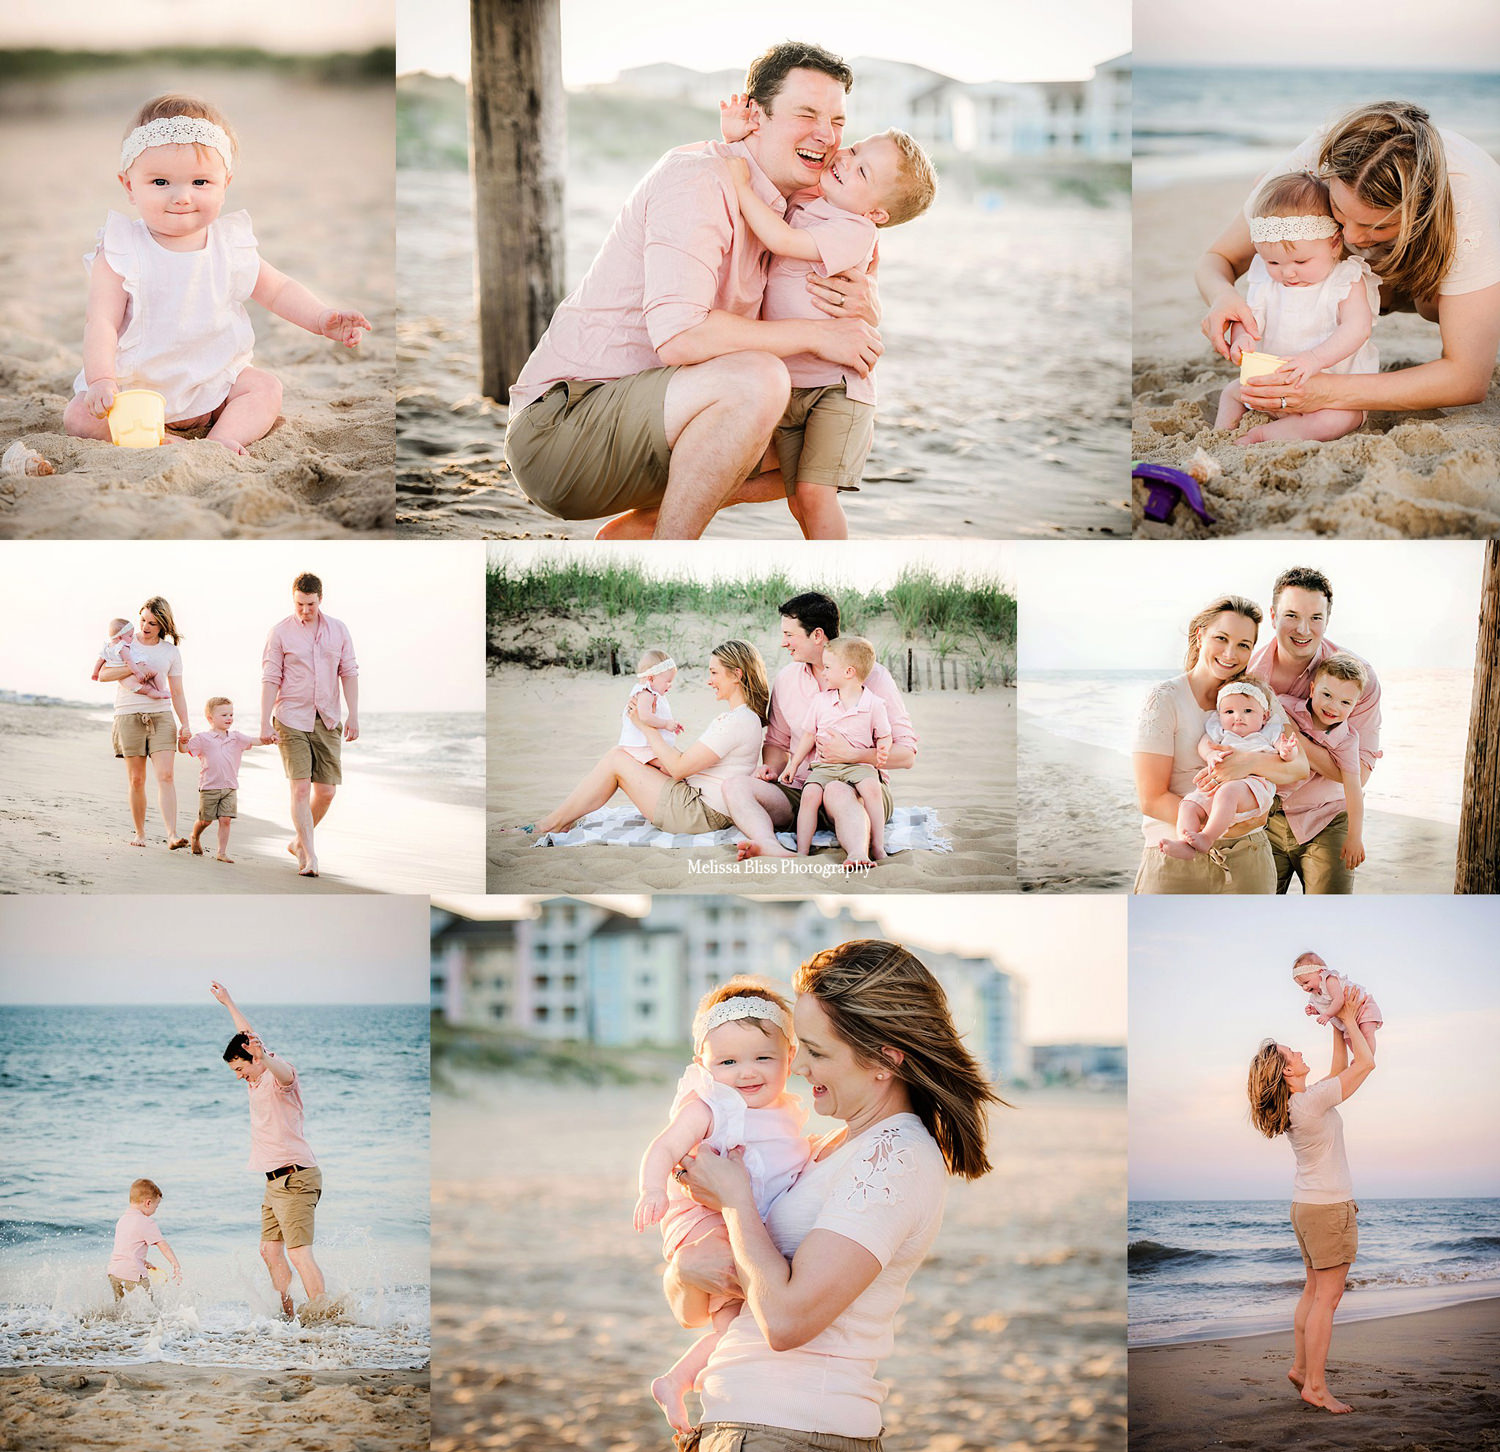 sandbridge-family-photographer-melissa-bliss-photography-virginia-beach-lifestyle-photos.jpg